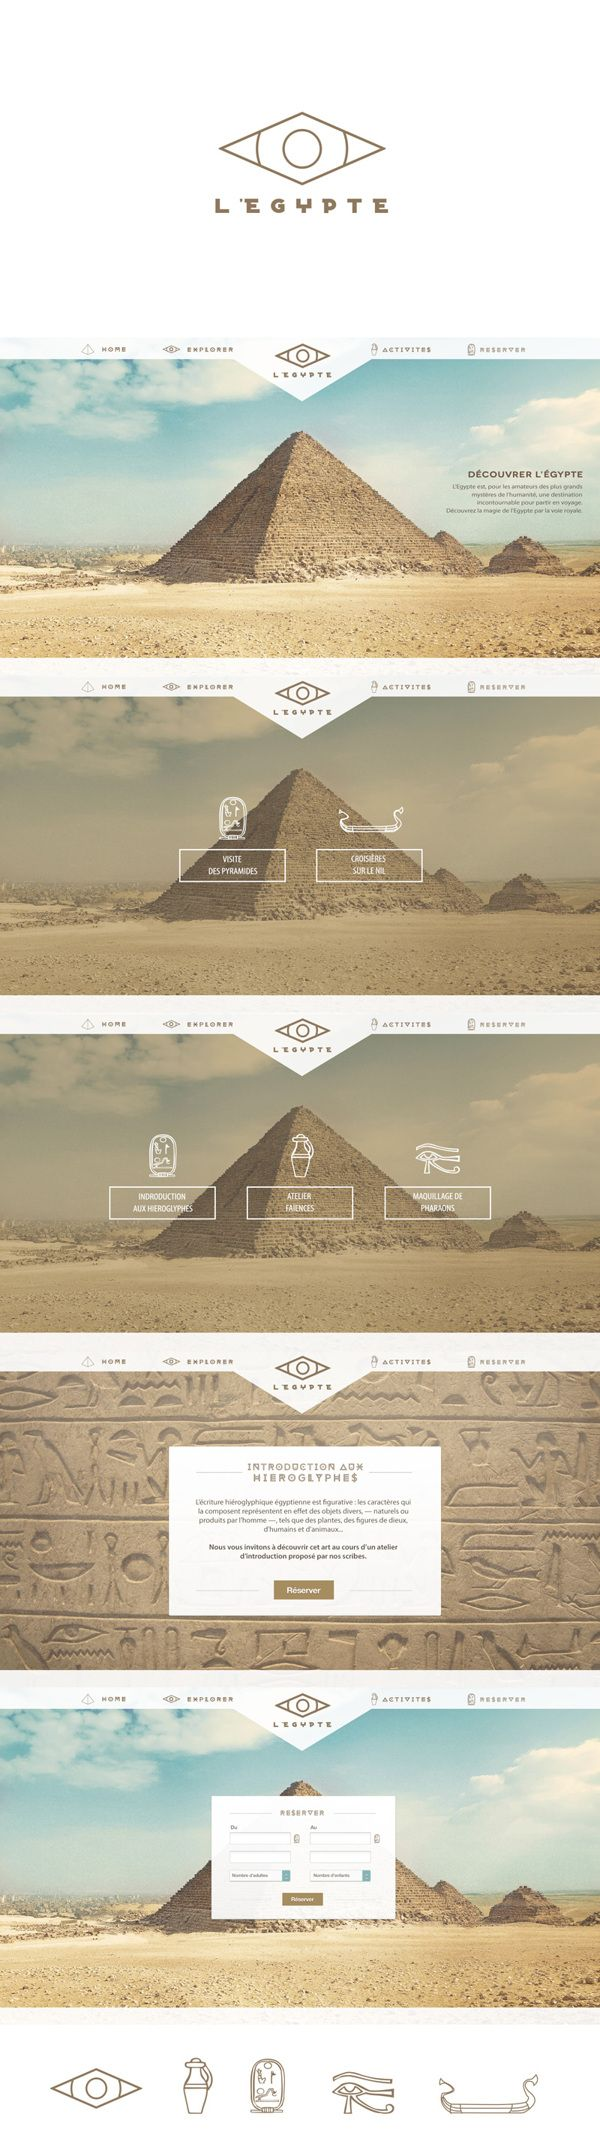 Egypt by Lawdi , via Behance. #webdesign